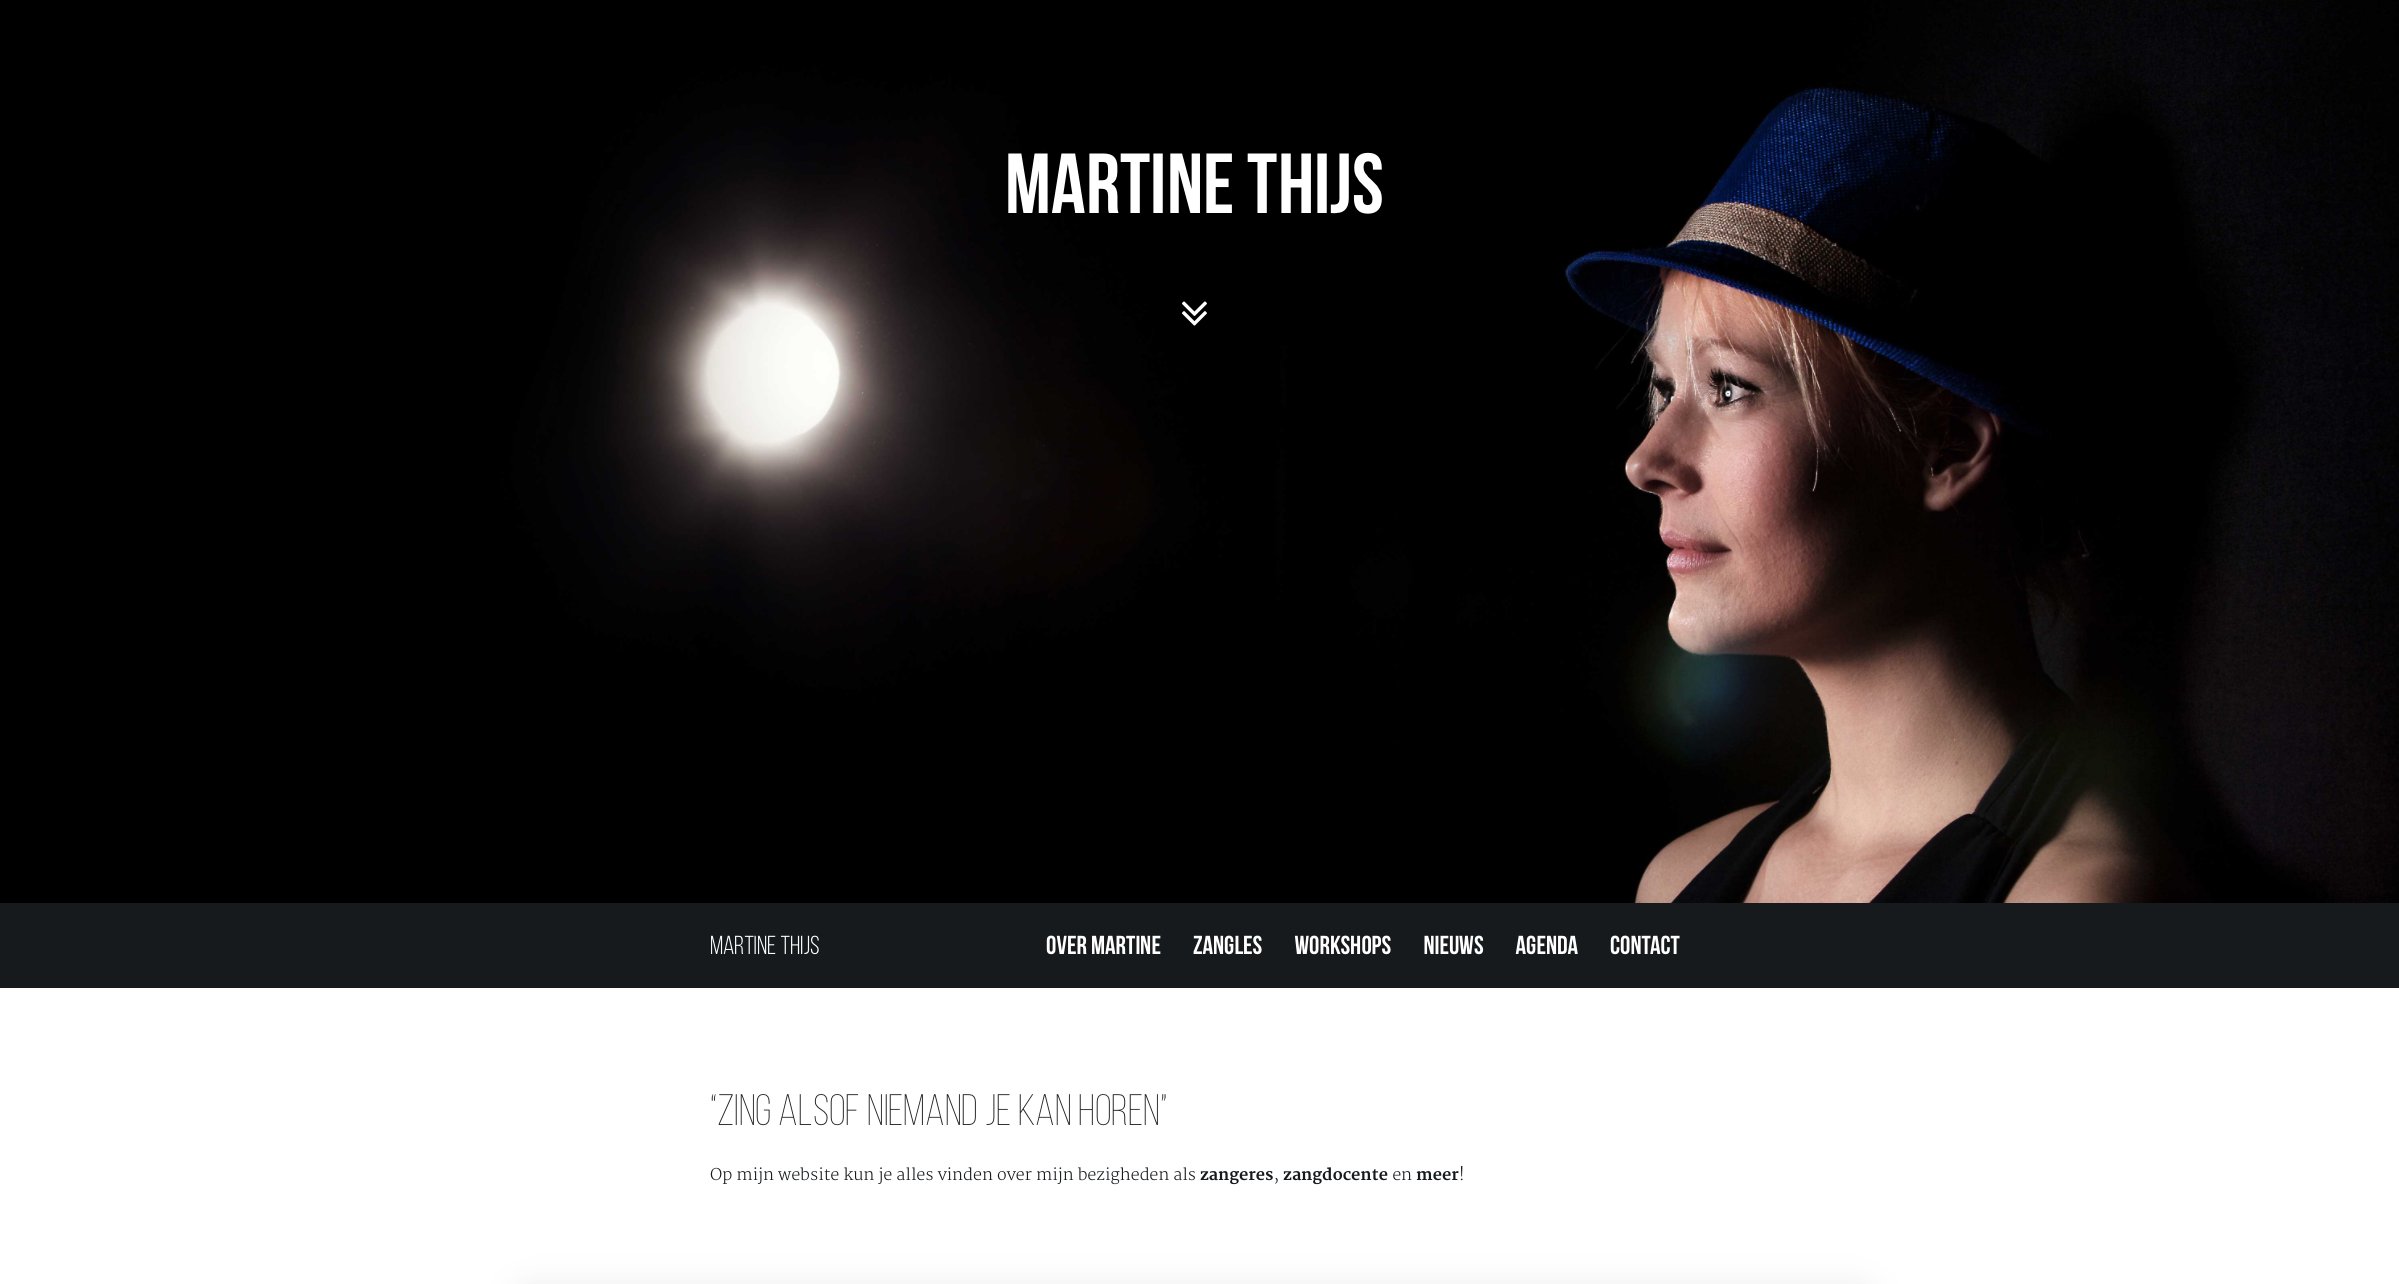 De website van Martine Thijs is online